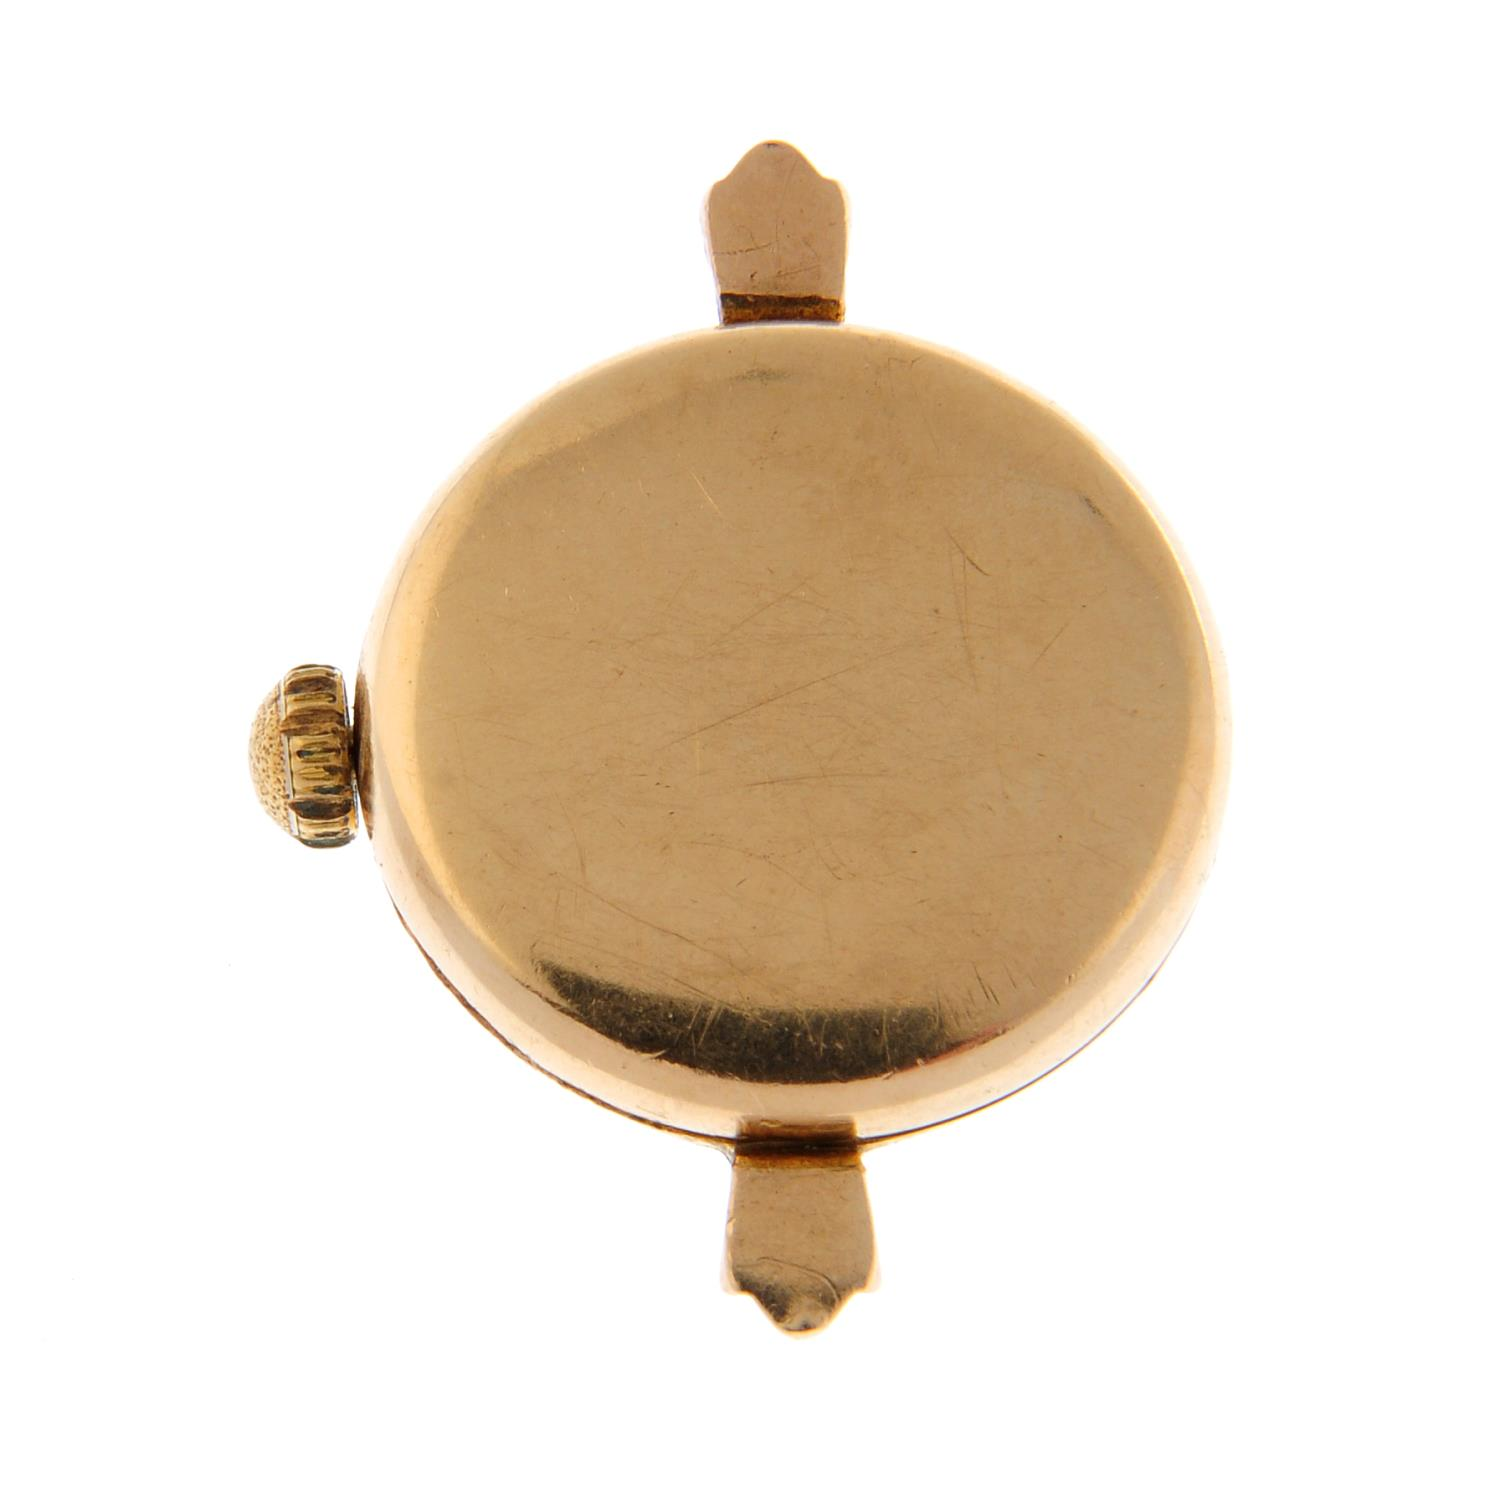 ROLEX - a watch head. - Image 2 of 3